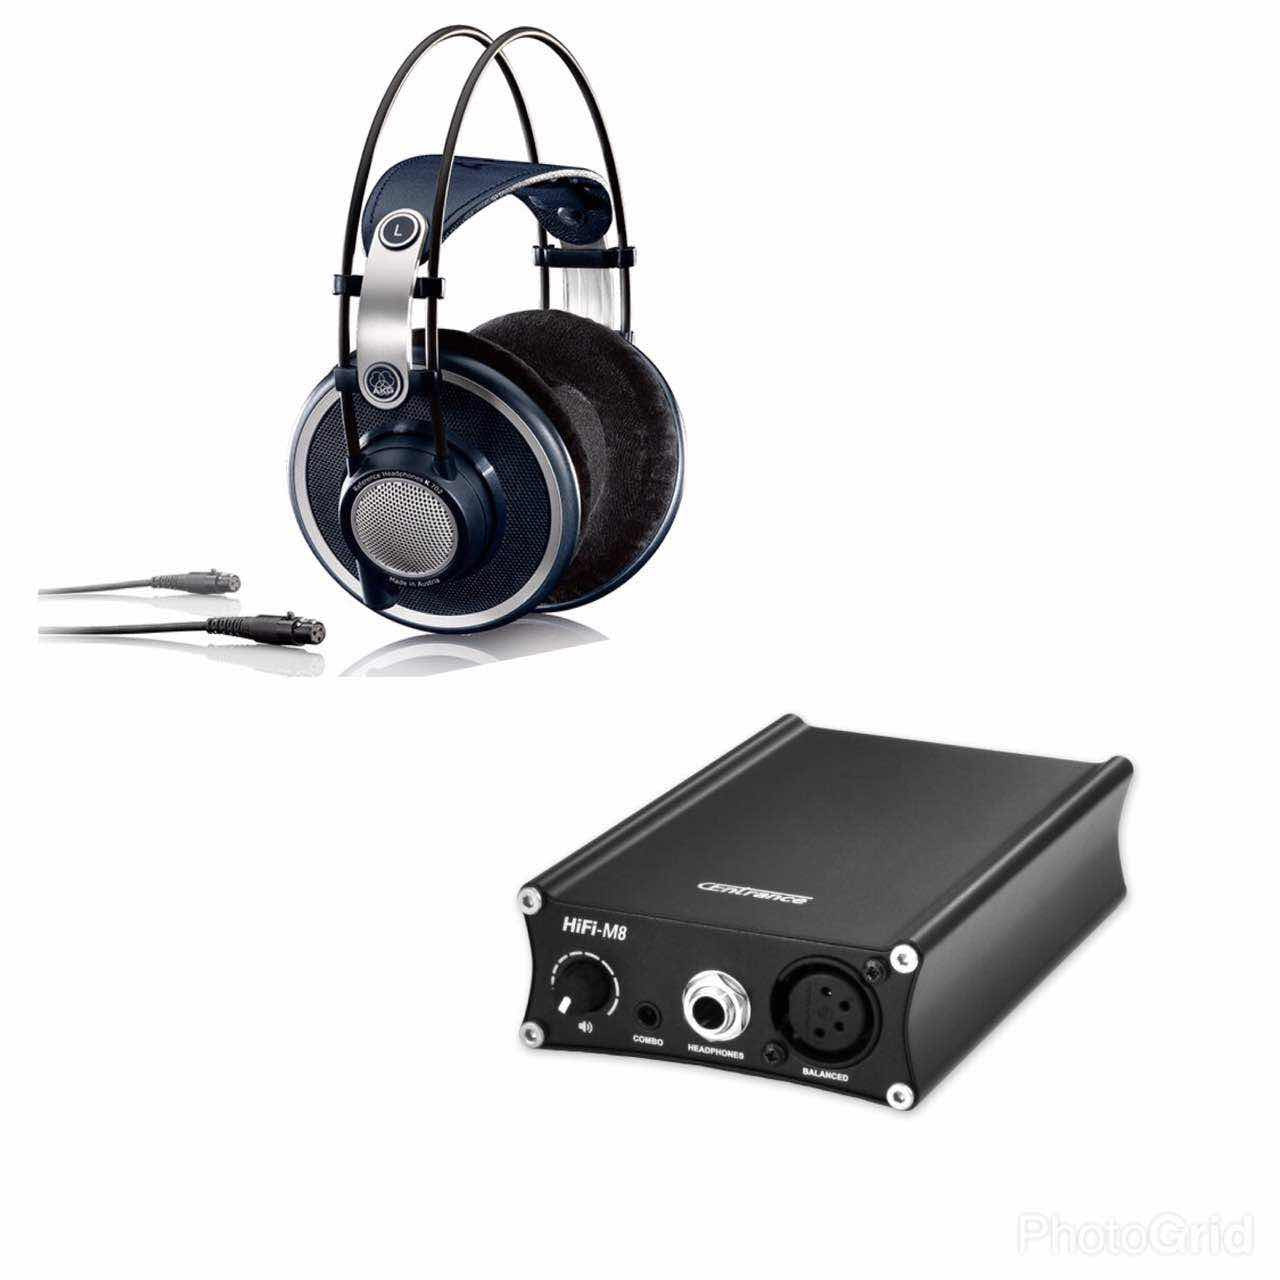 AKG k702 Balanced Ready Version + CEntrance HiFi-M8 XL4 model